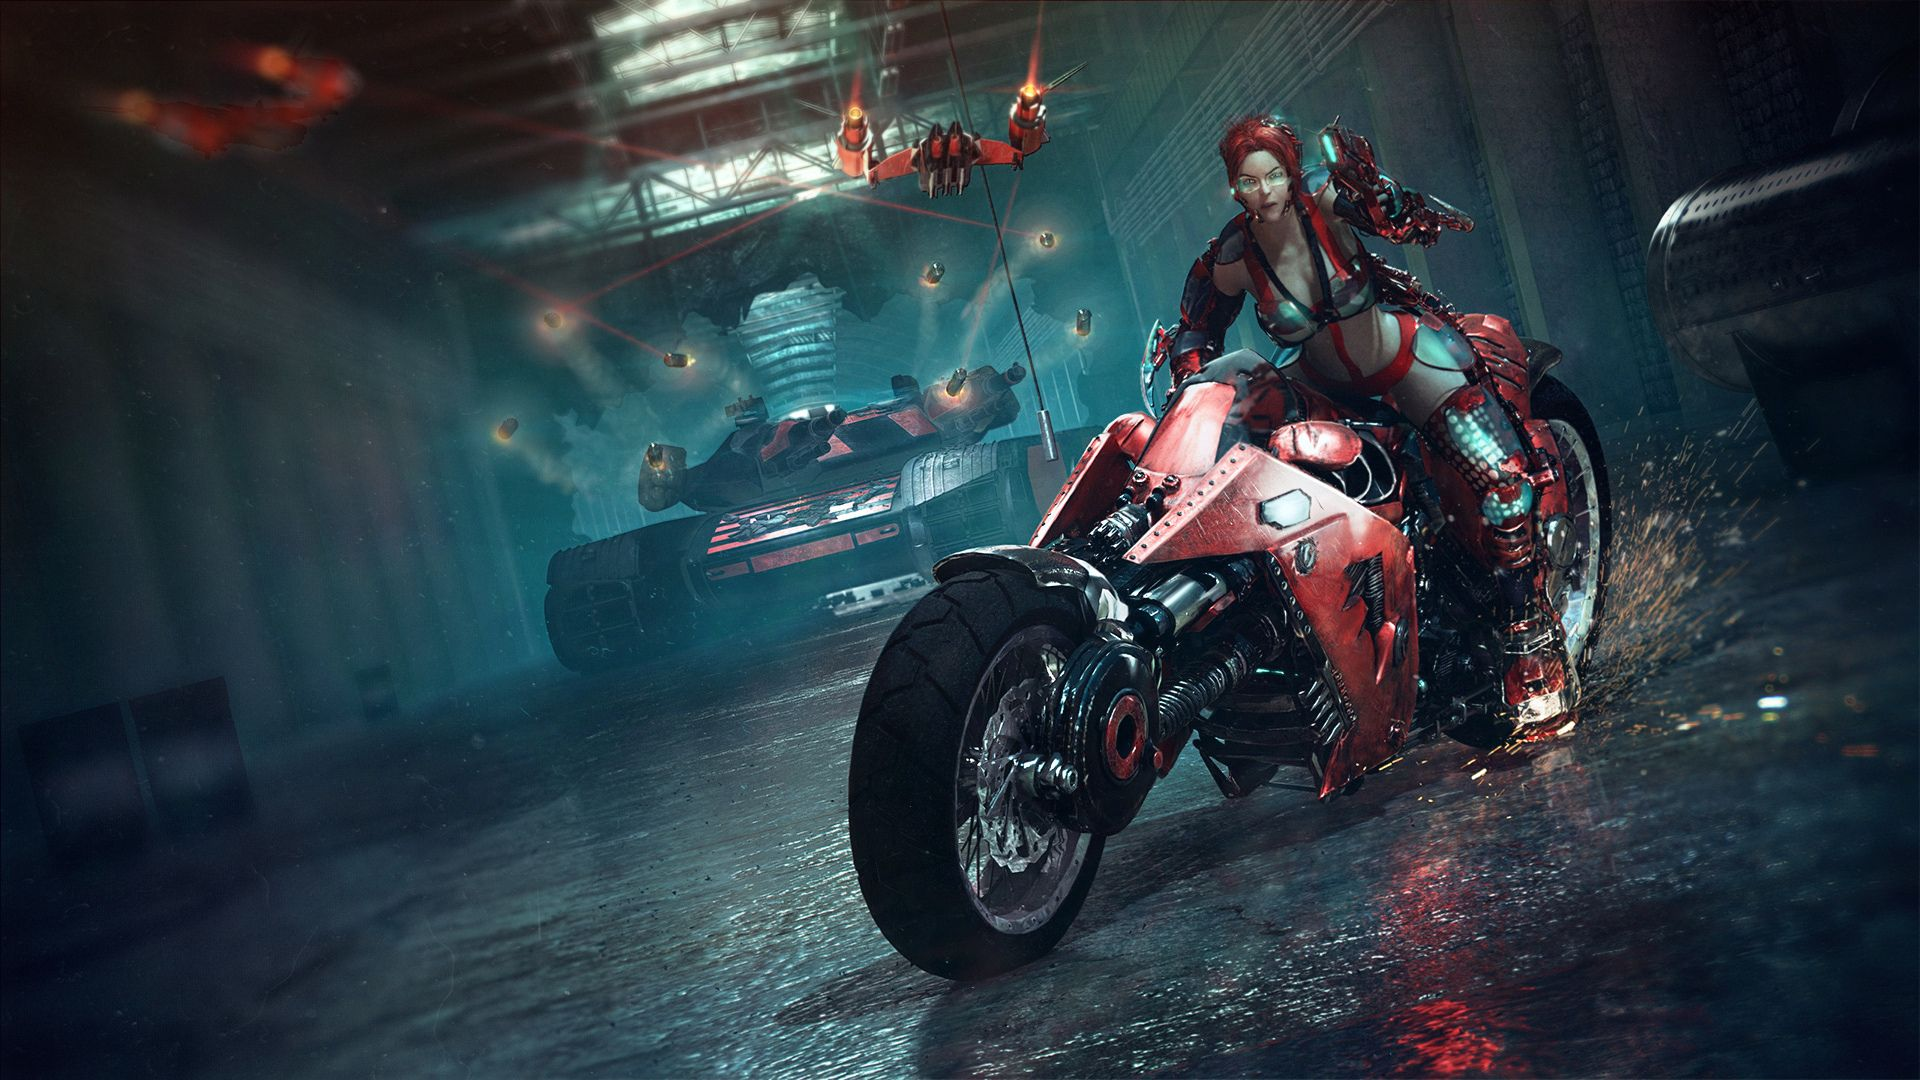 Dubstep sci fi 3d motorcycle bike warrior weapons guns tanks cyberpunk punk women girl wallpaper 1920x1080 37840 wallpaperup